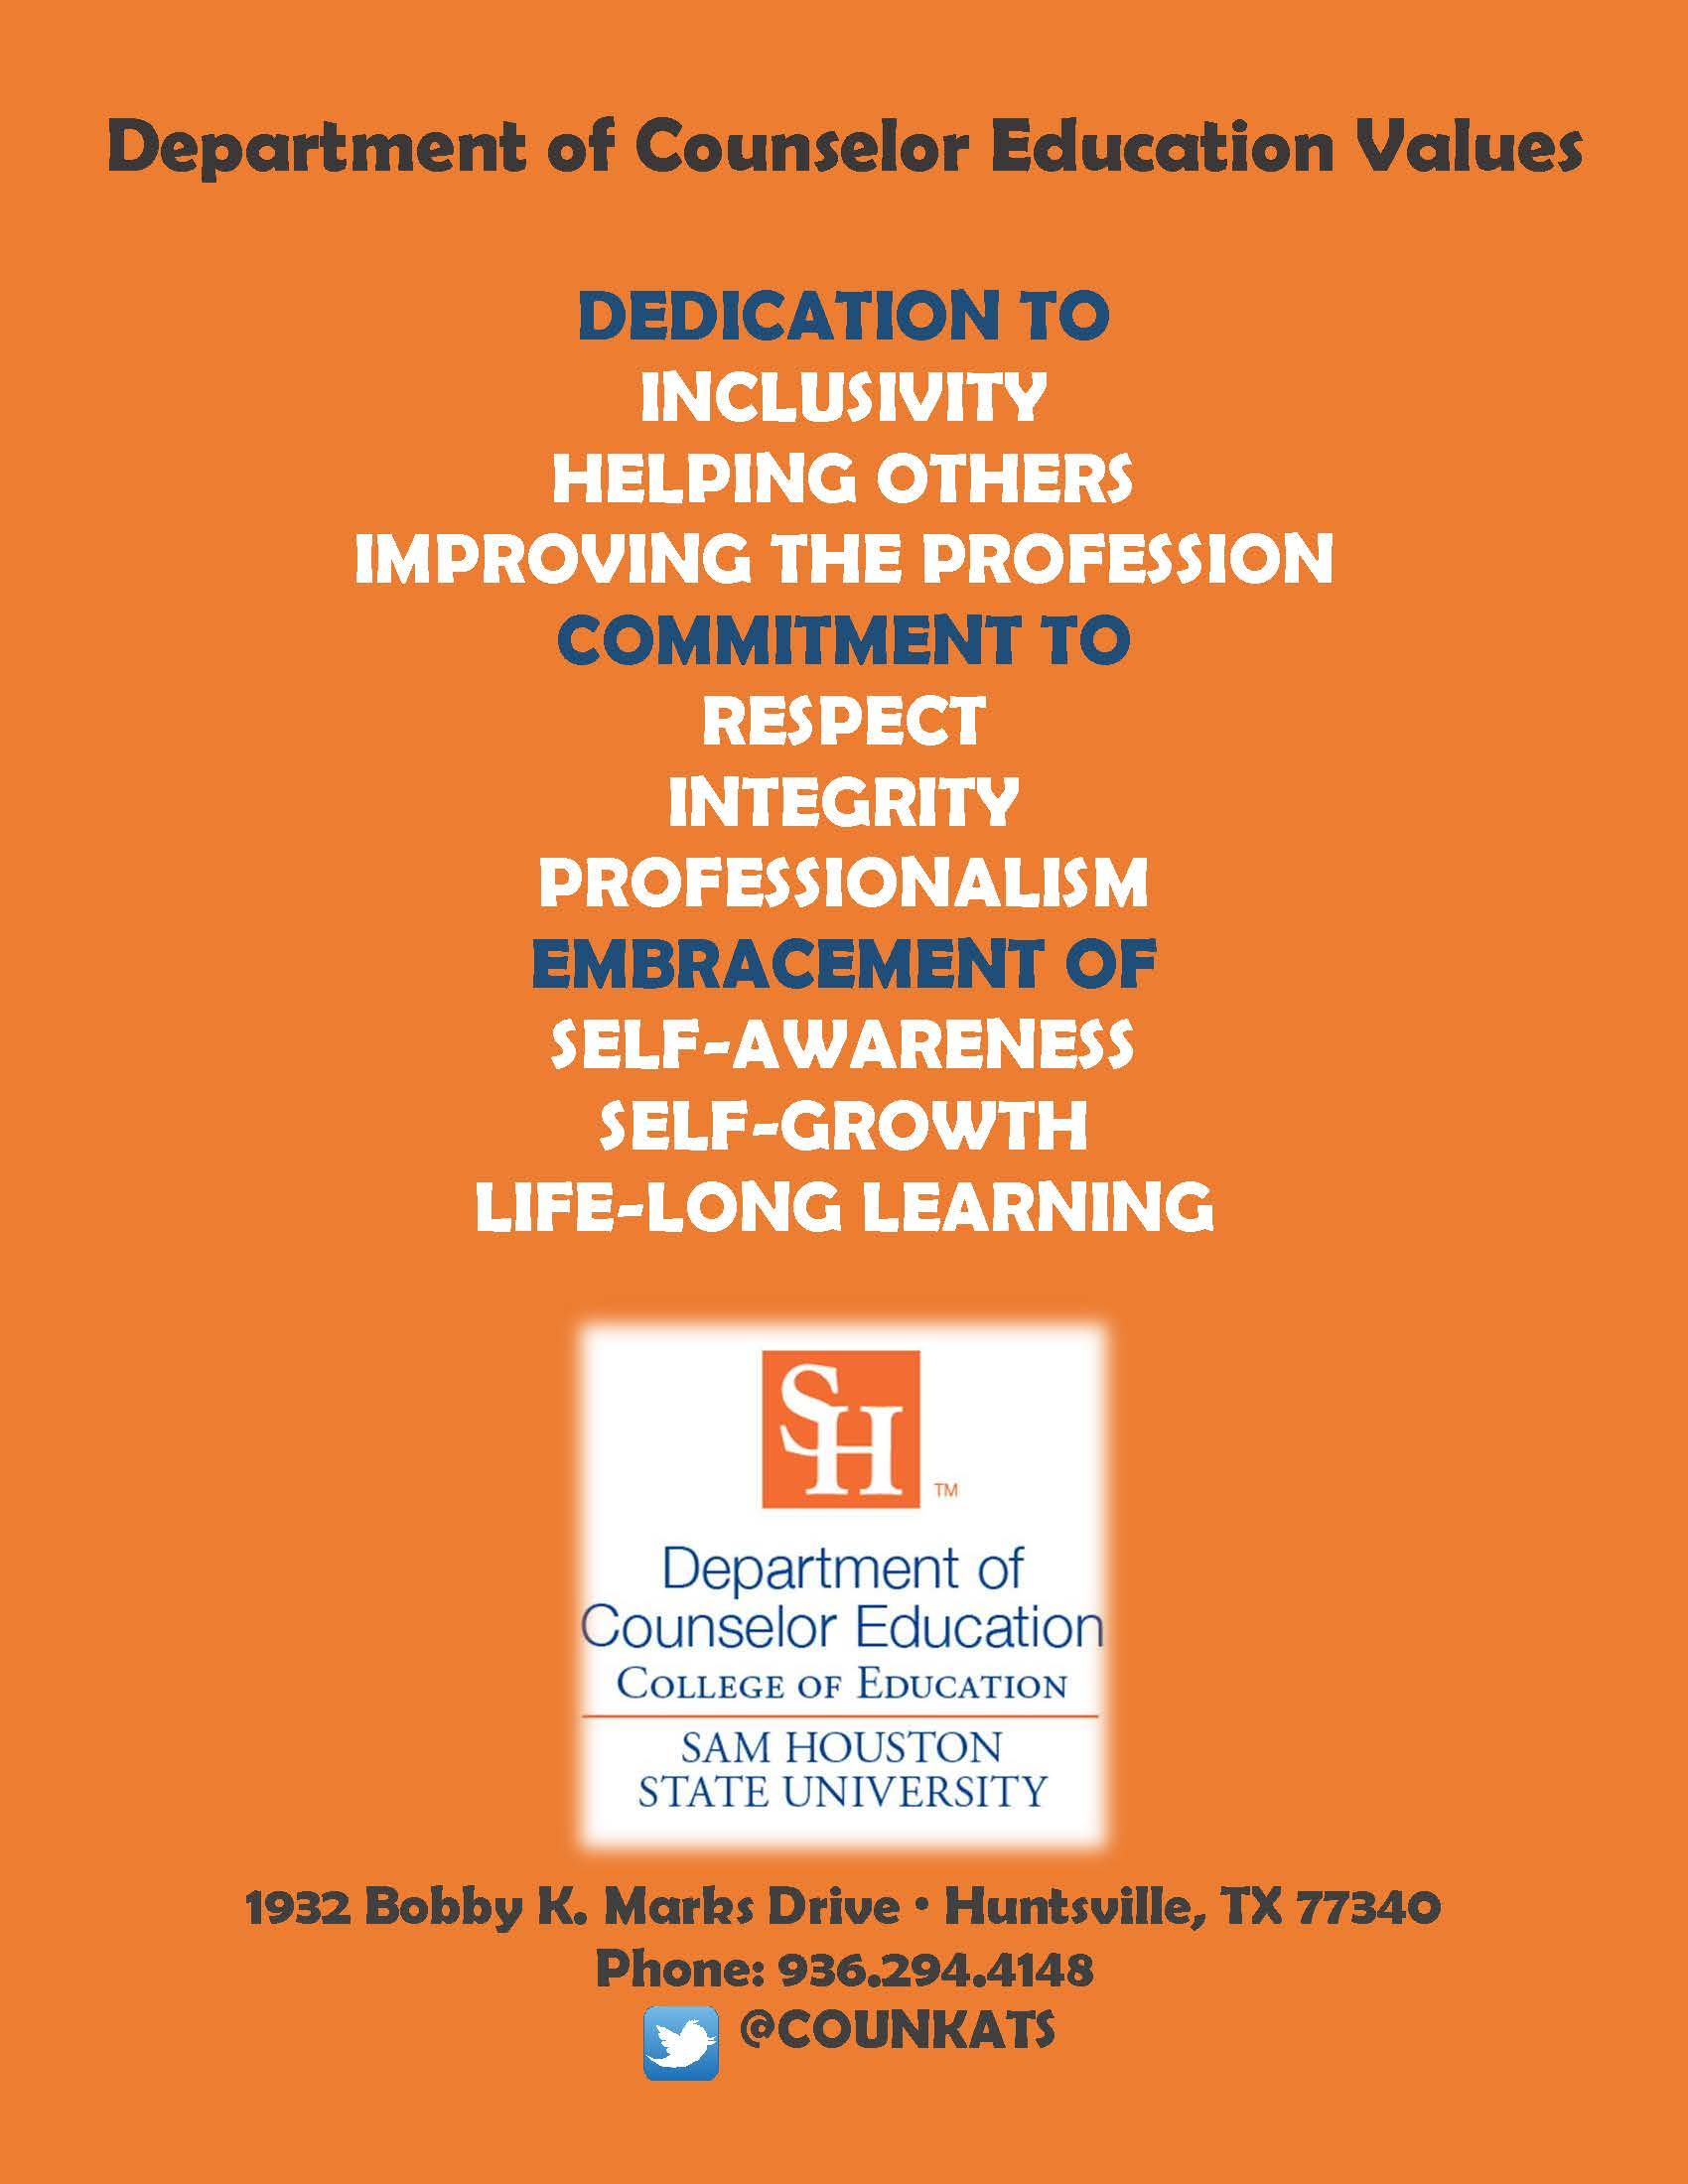 Department of Counselor Education Values: Dedication to inclusivity, helping others, improving the profession. Commitment to respect, integrity, professionalism. Embracement of self-awareness, self-growth, life-long learning.